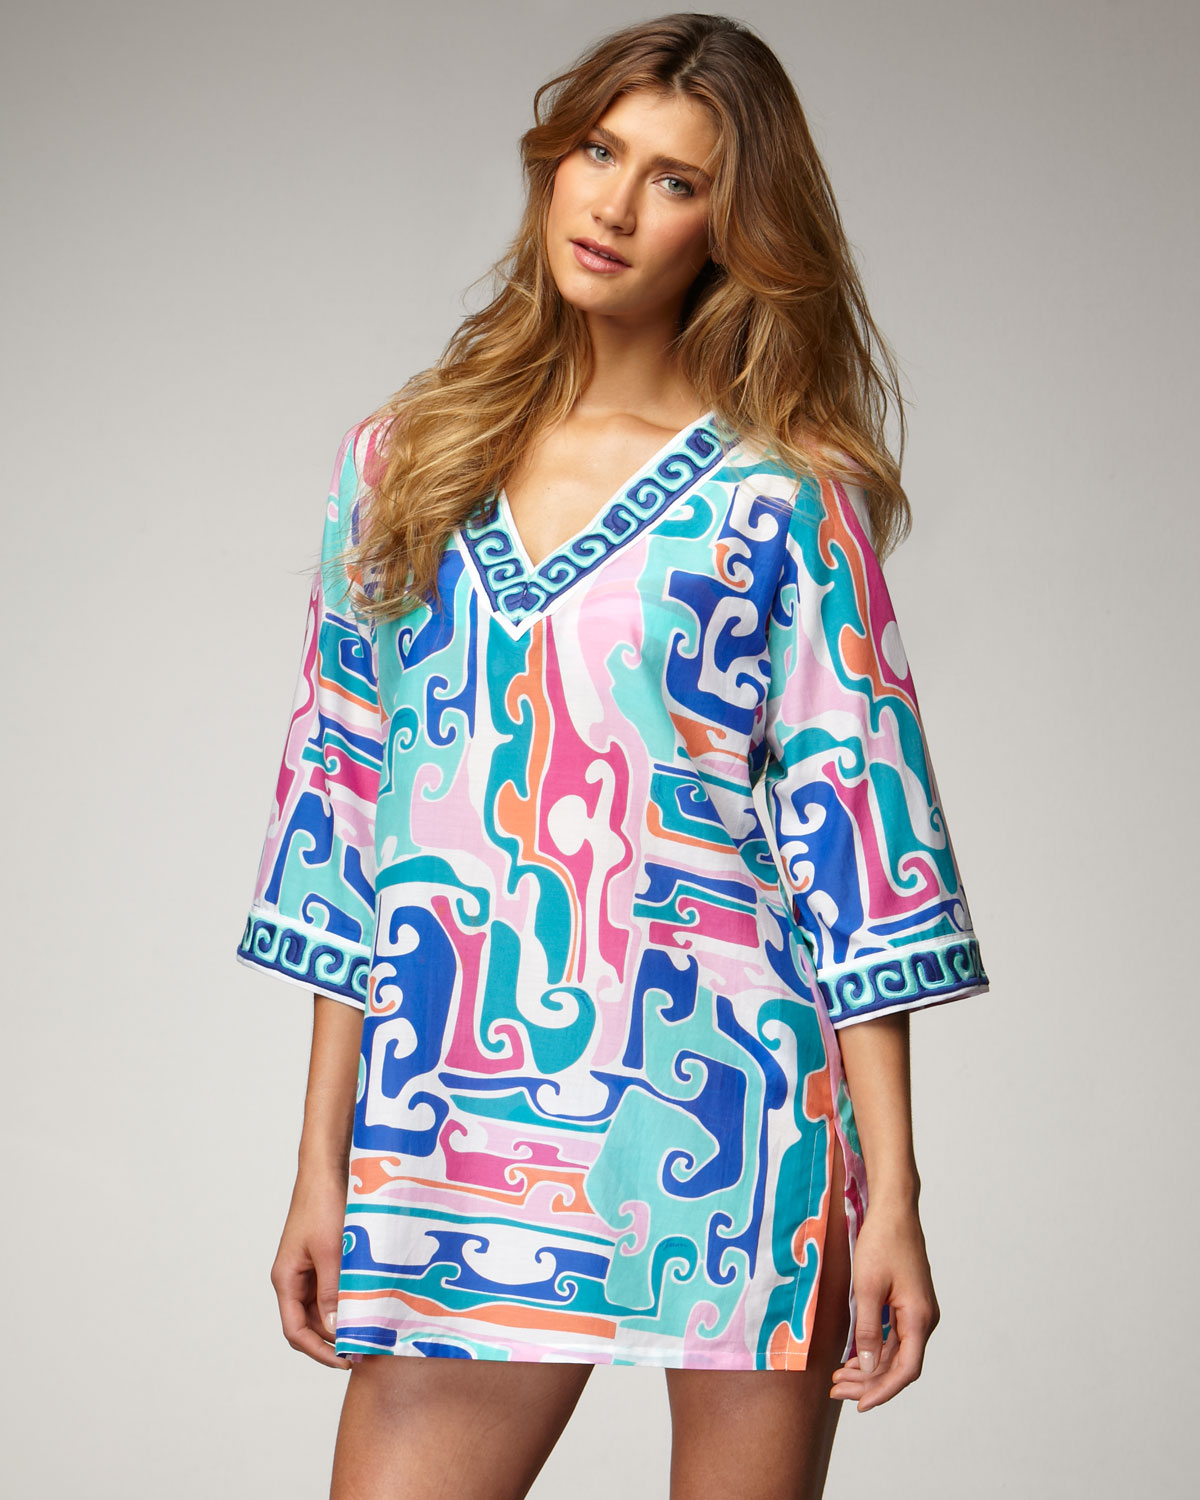 5369dc953a191 Trina Turk Mirage Tunic Coverup on PopScreen